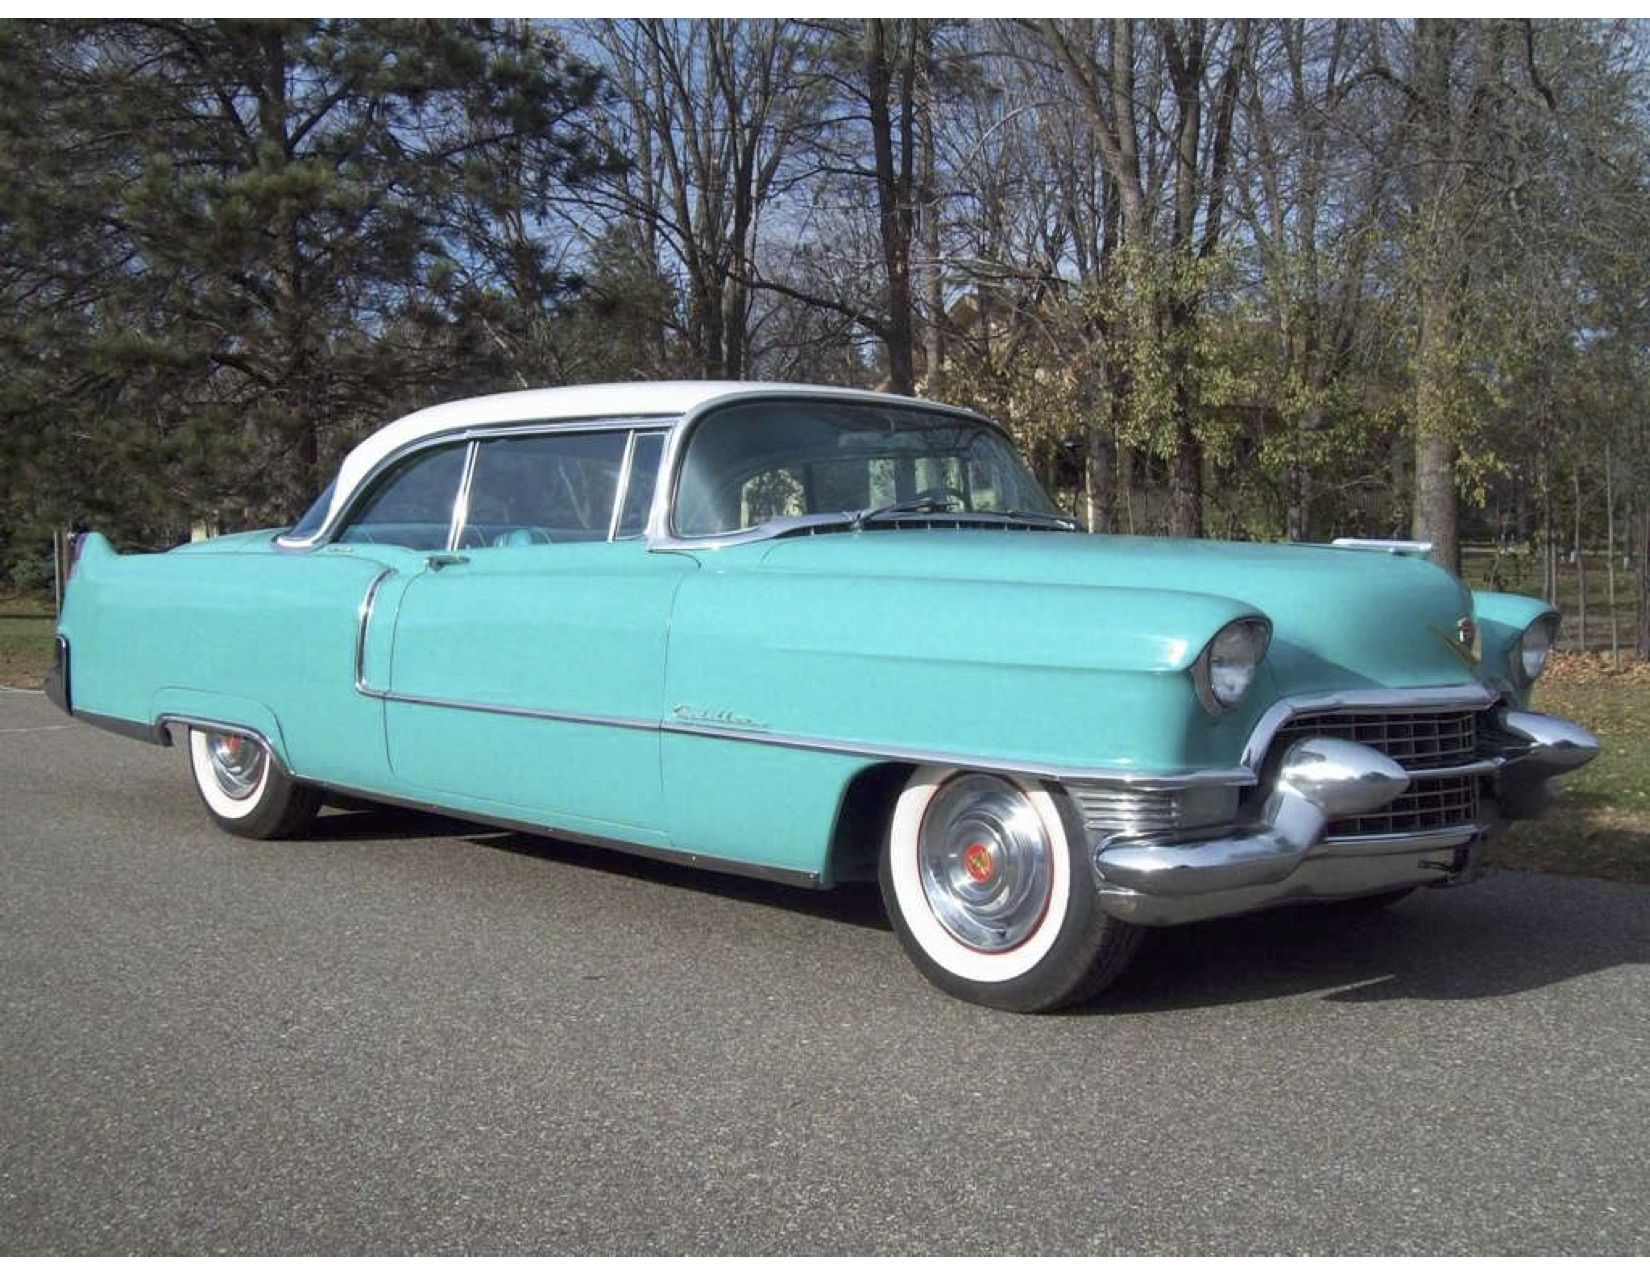 Pin By Jacques Comet On Bucket List Pinterest Cadillac And Cars - List of old cars